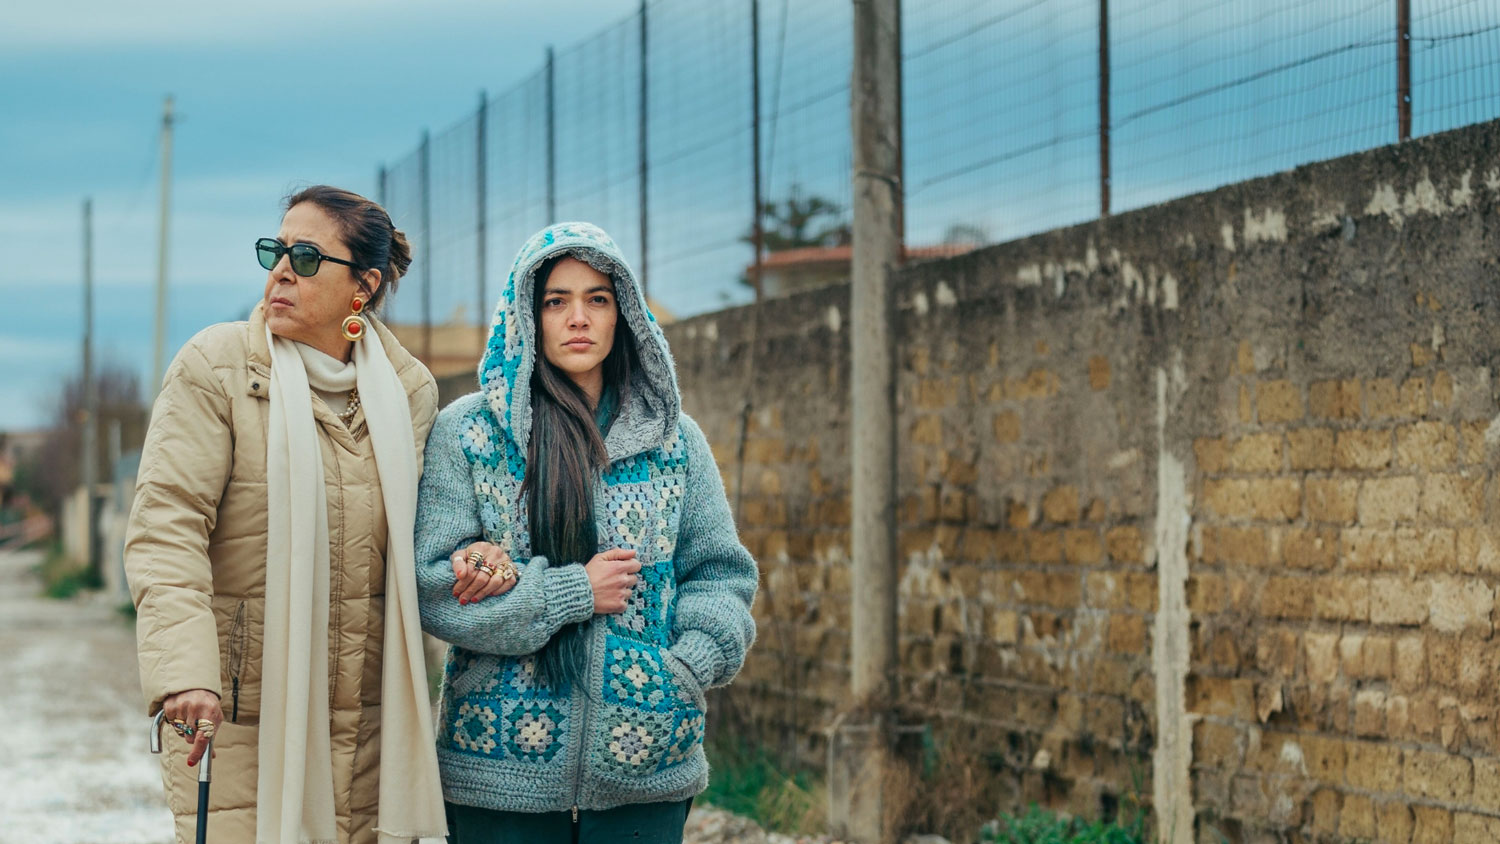 David di Donatello Awards winners include The Vice of Hope (MIA 2017)